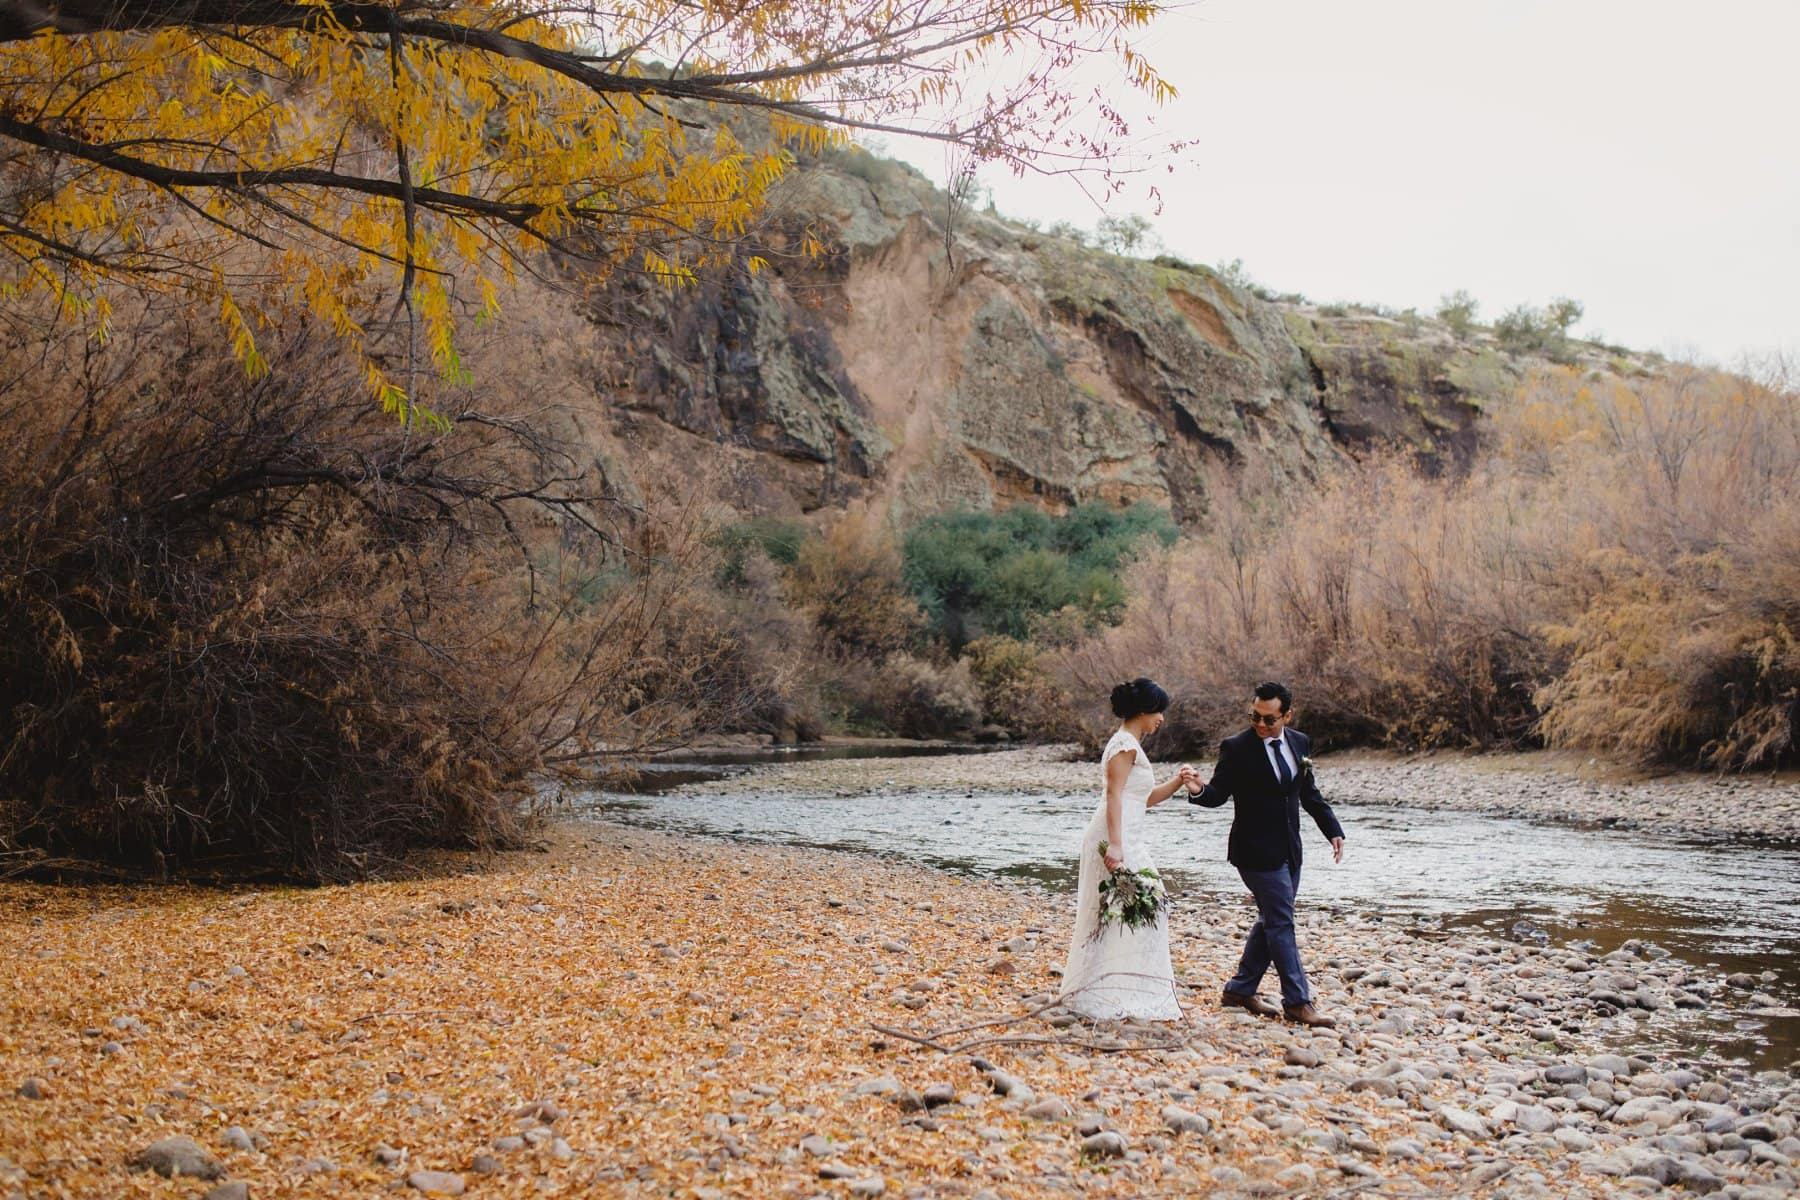 outside location for small wedding in Arizona